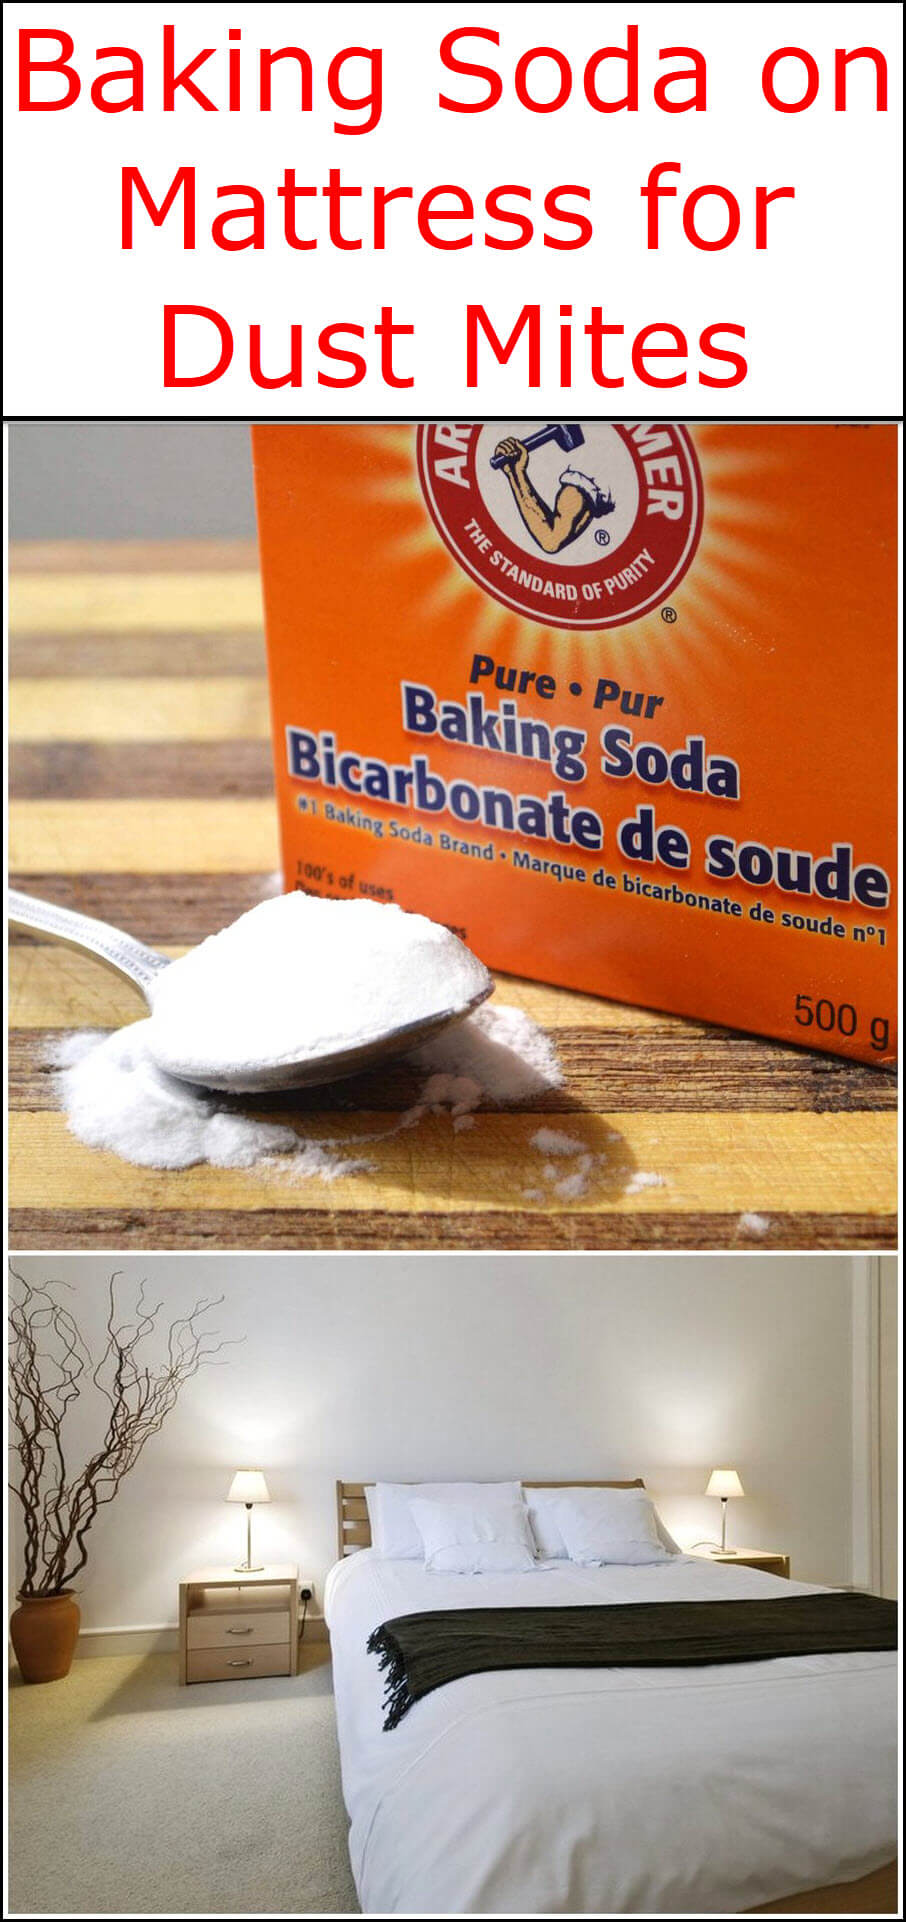 baking soda on mattress for dust mites baking soda uses and diy home remedies. Black Bedroom Furniture Sets. Home Design Ideas